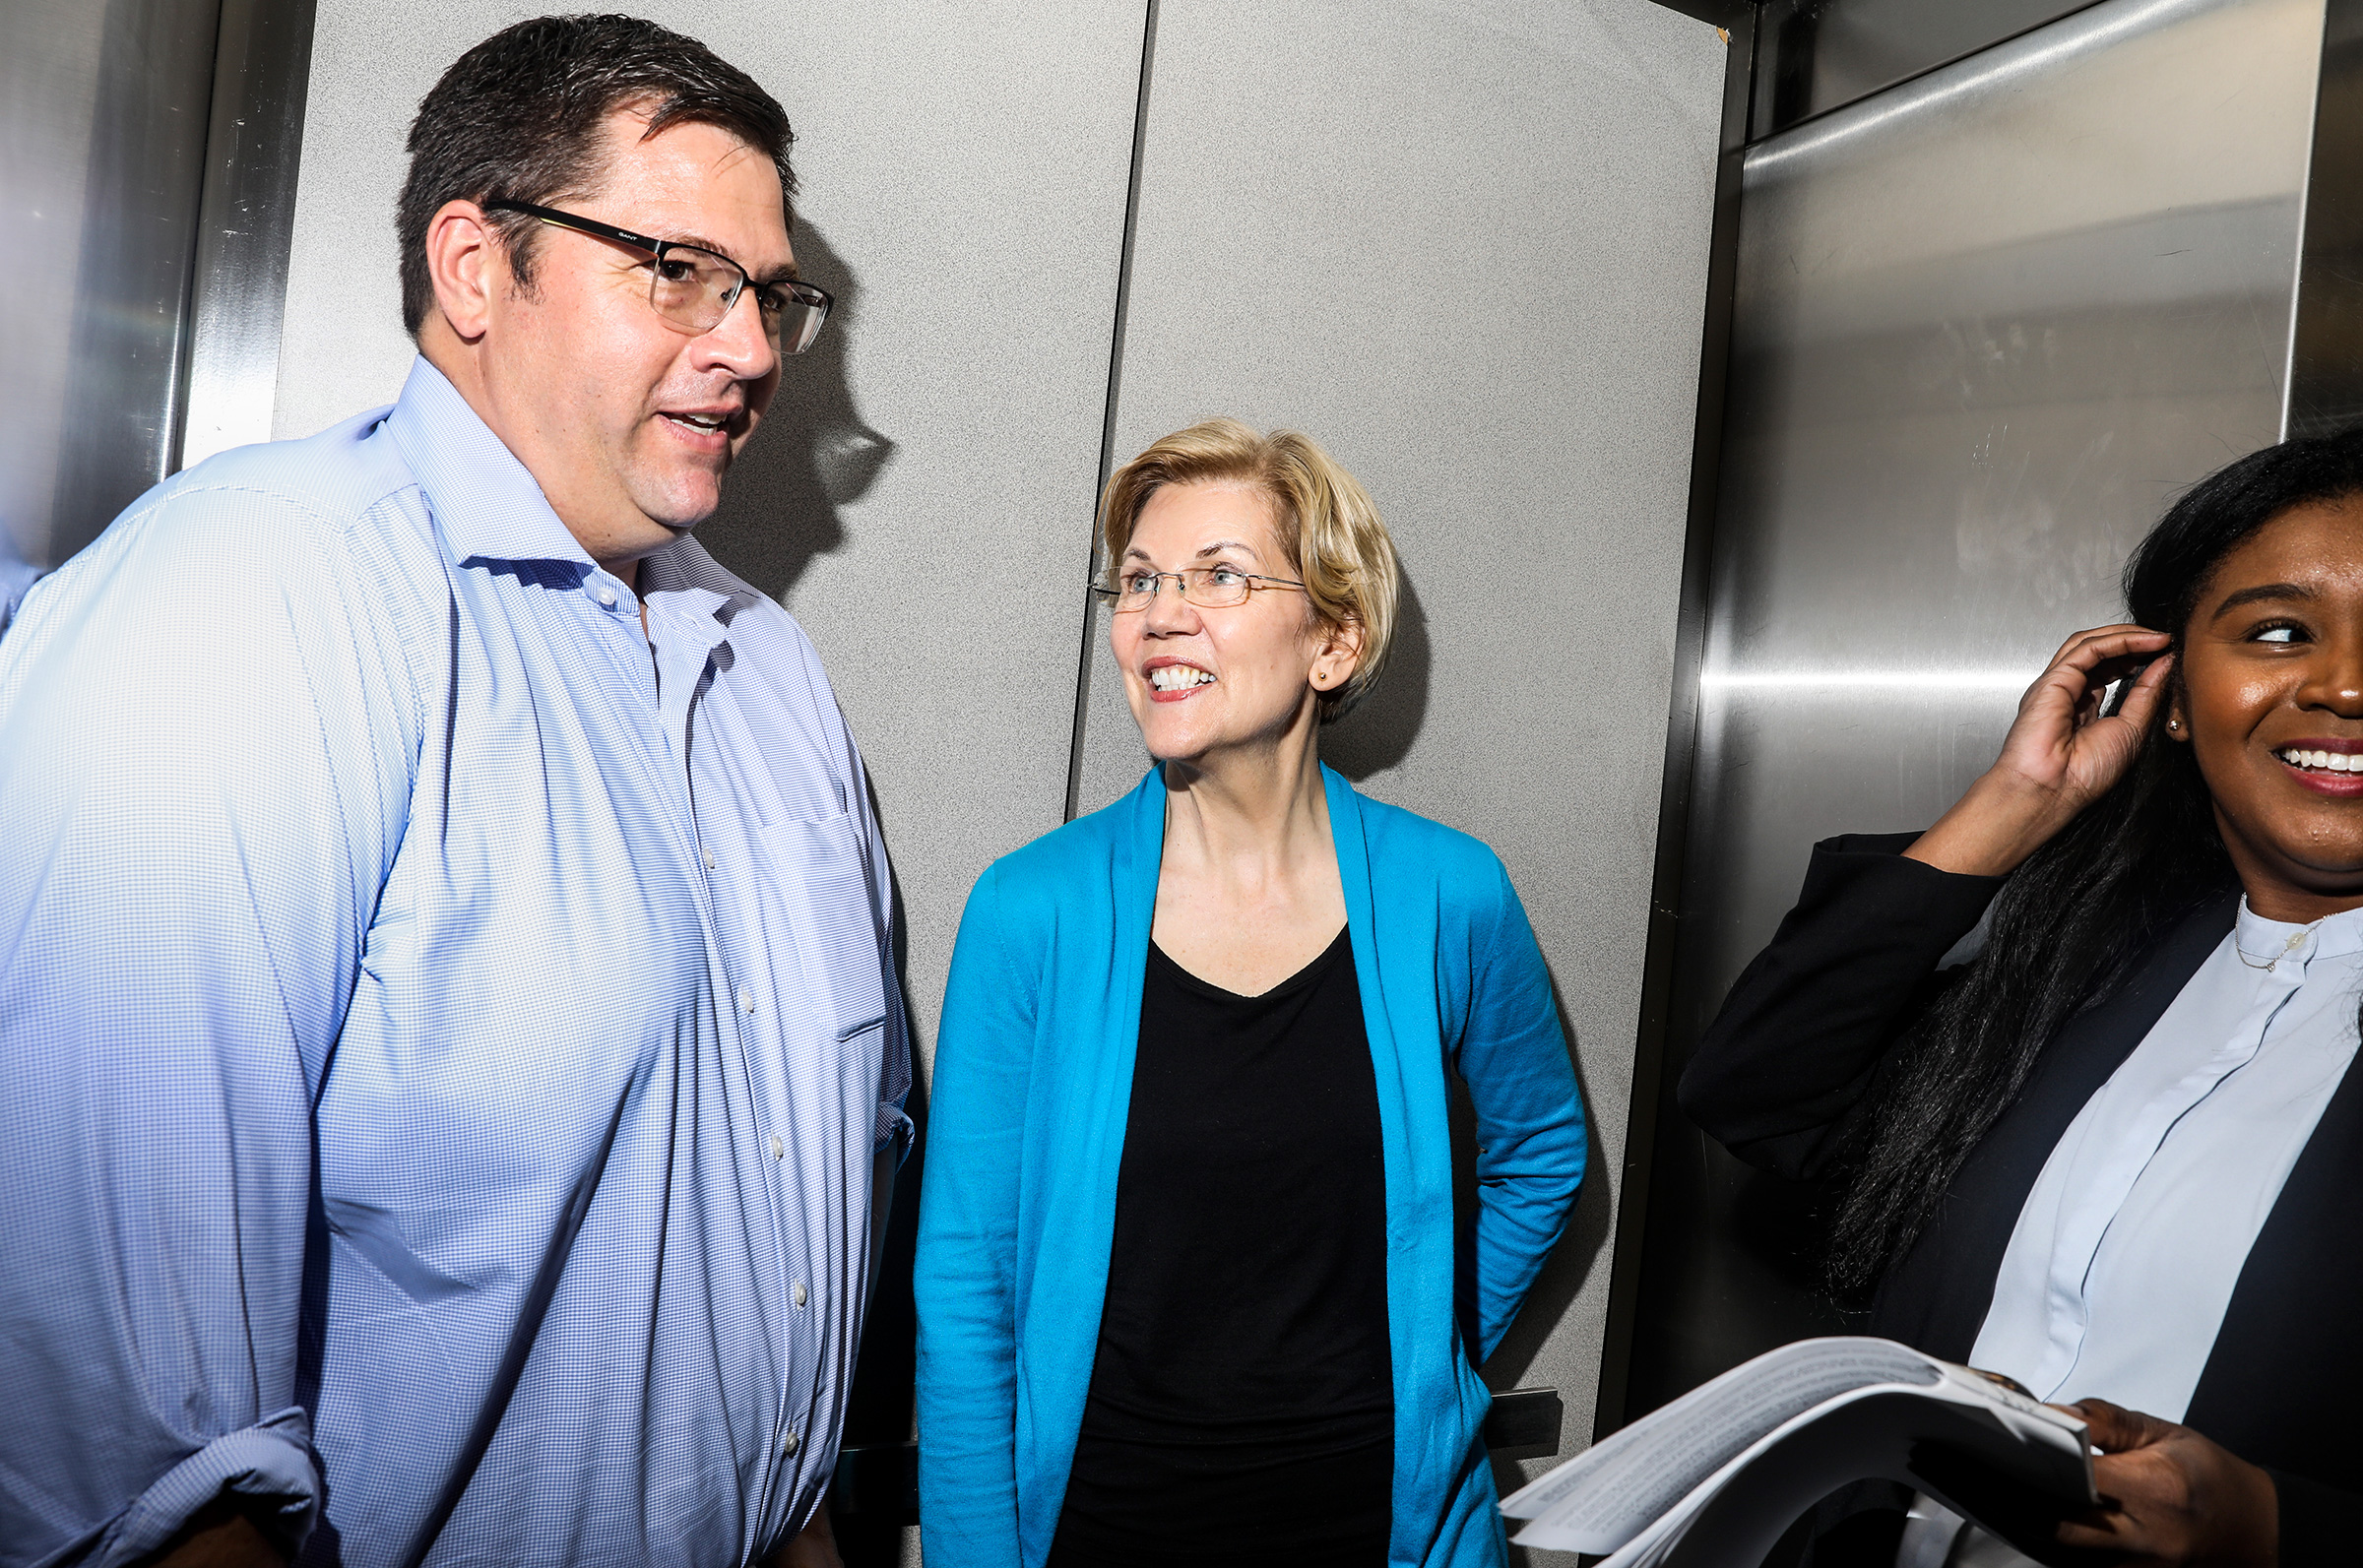 Warren and her son, Alex, in the elevator on the way up to an organizing event at Iowa State University on May 3.